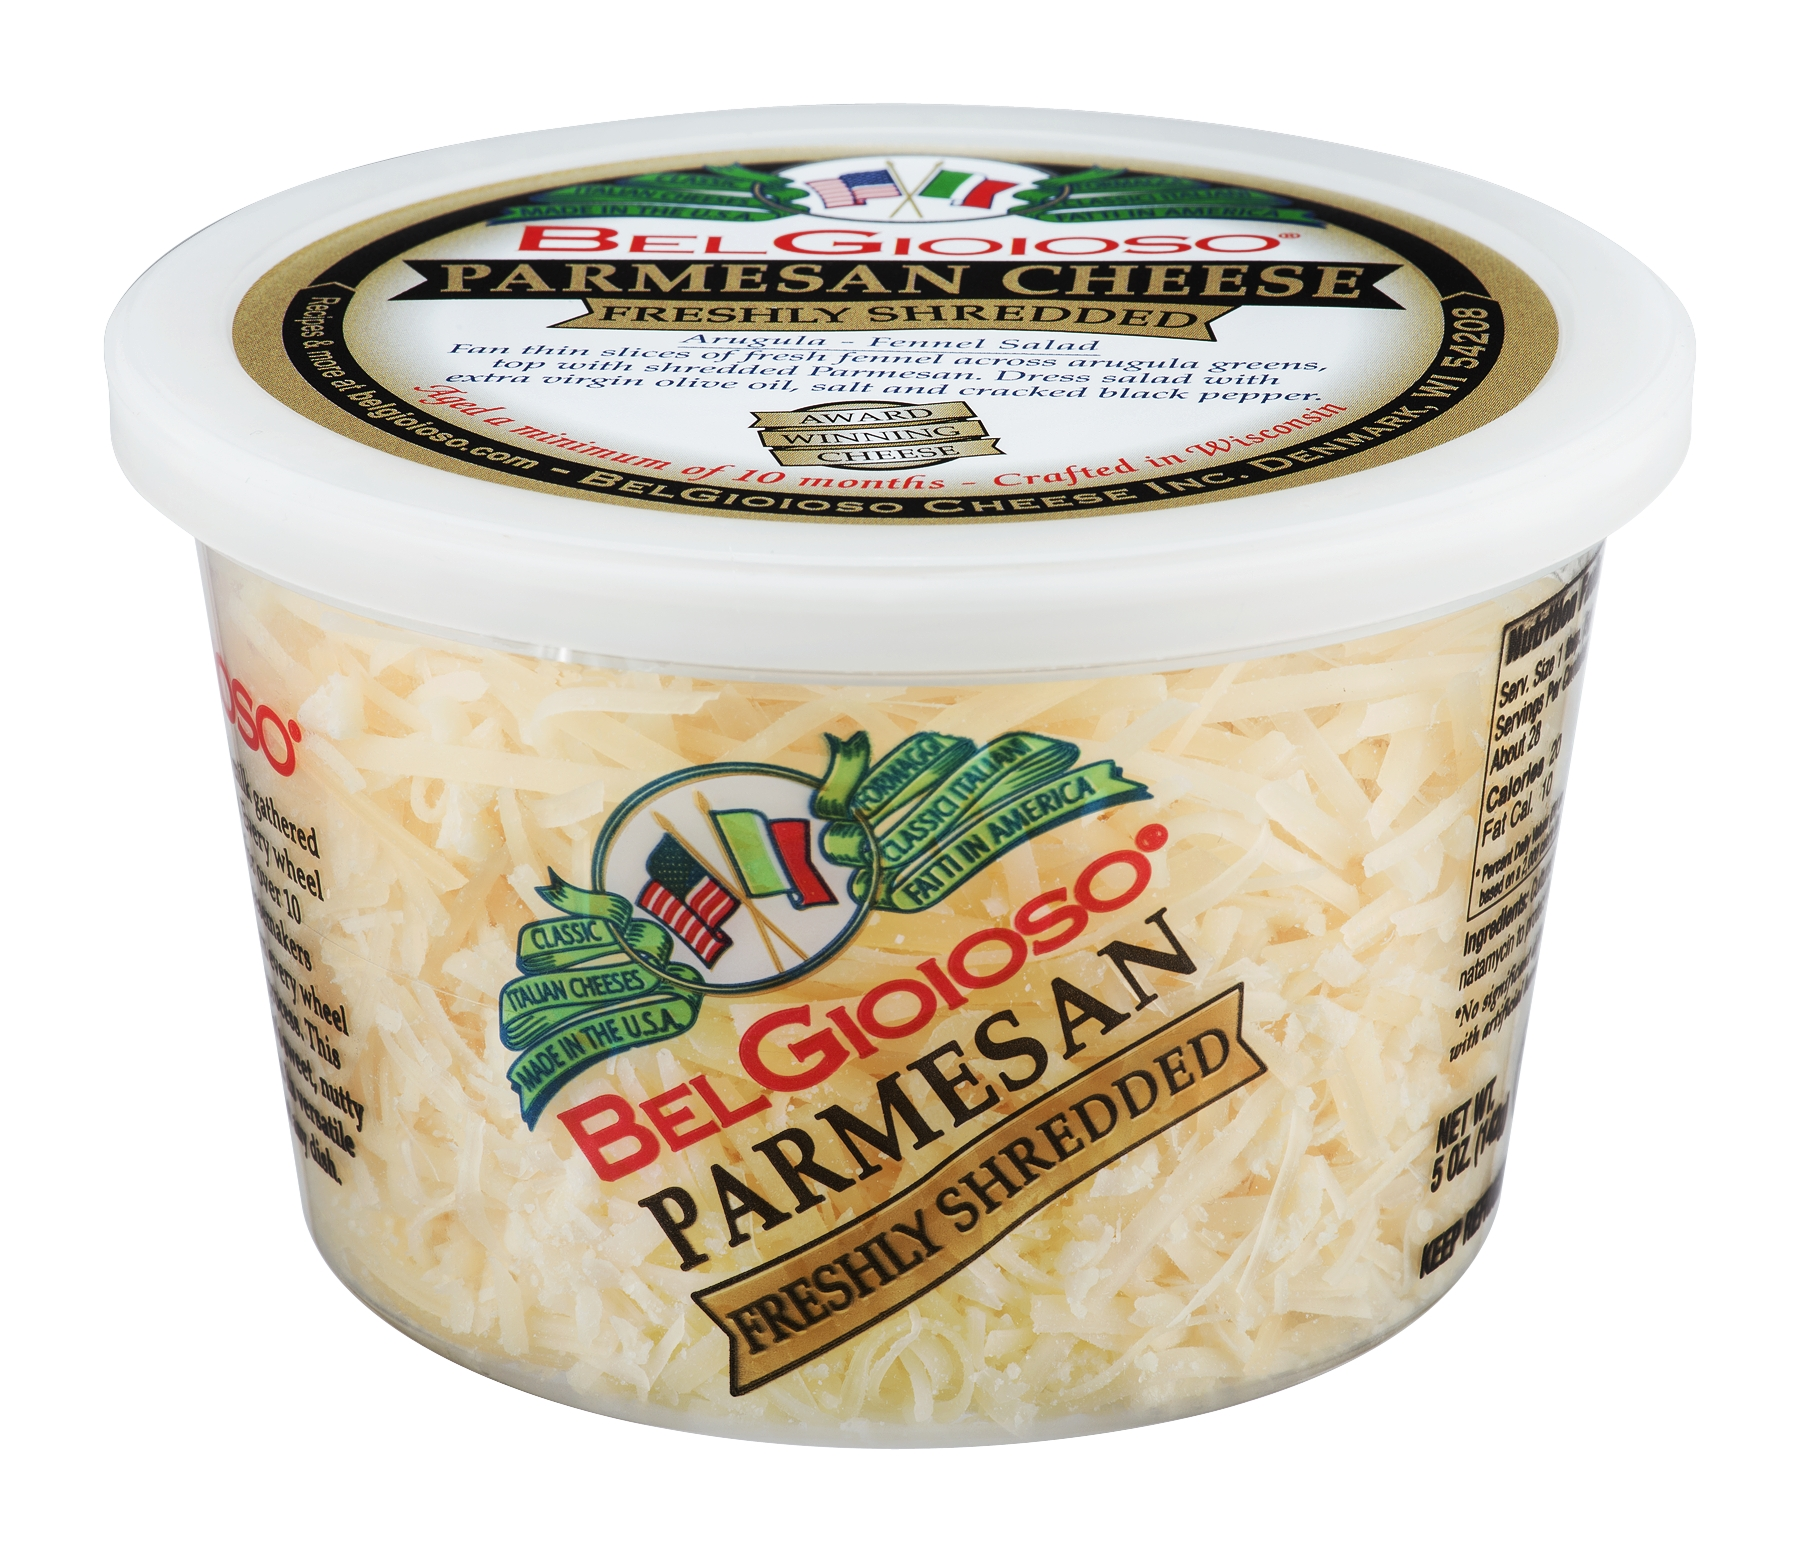 Belgioioso Parmesan - Shredded Cup